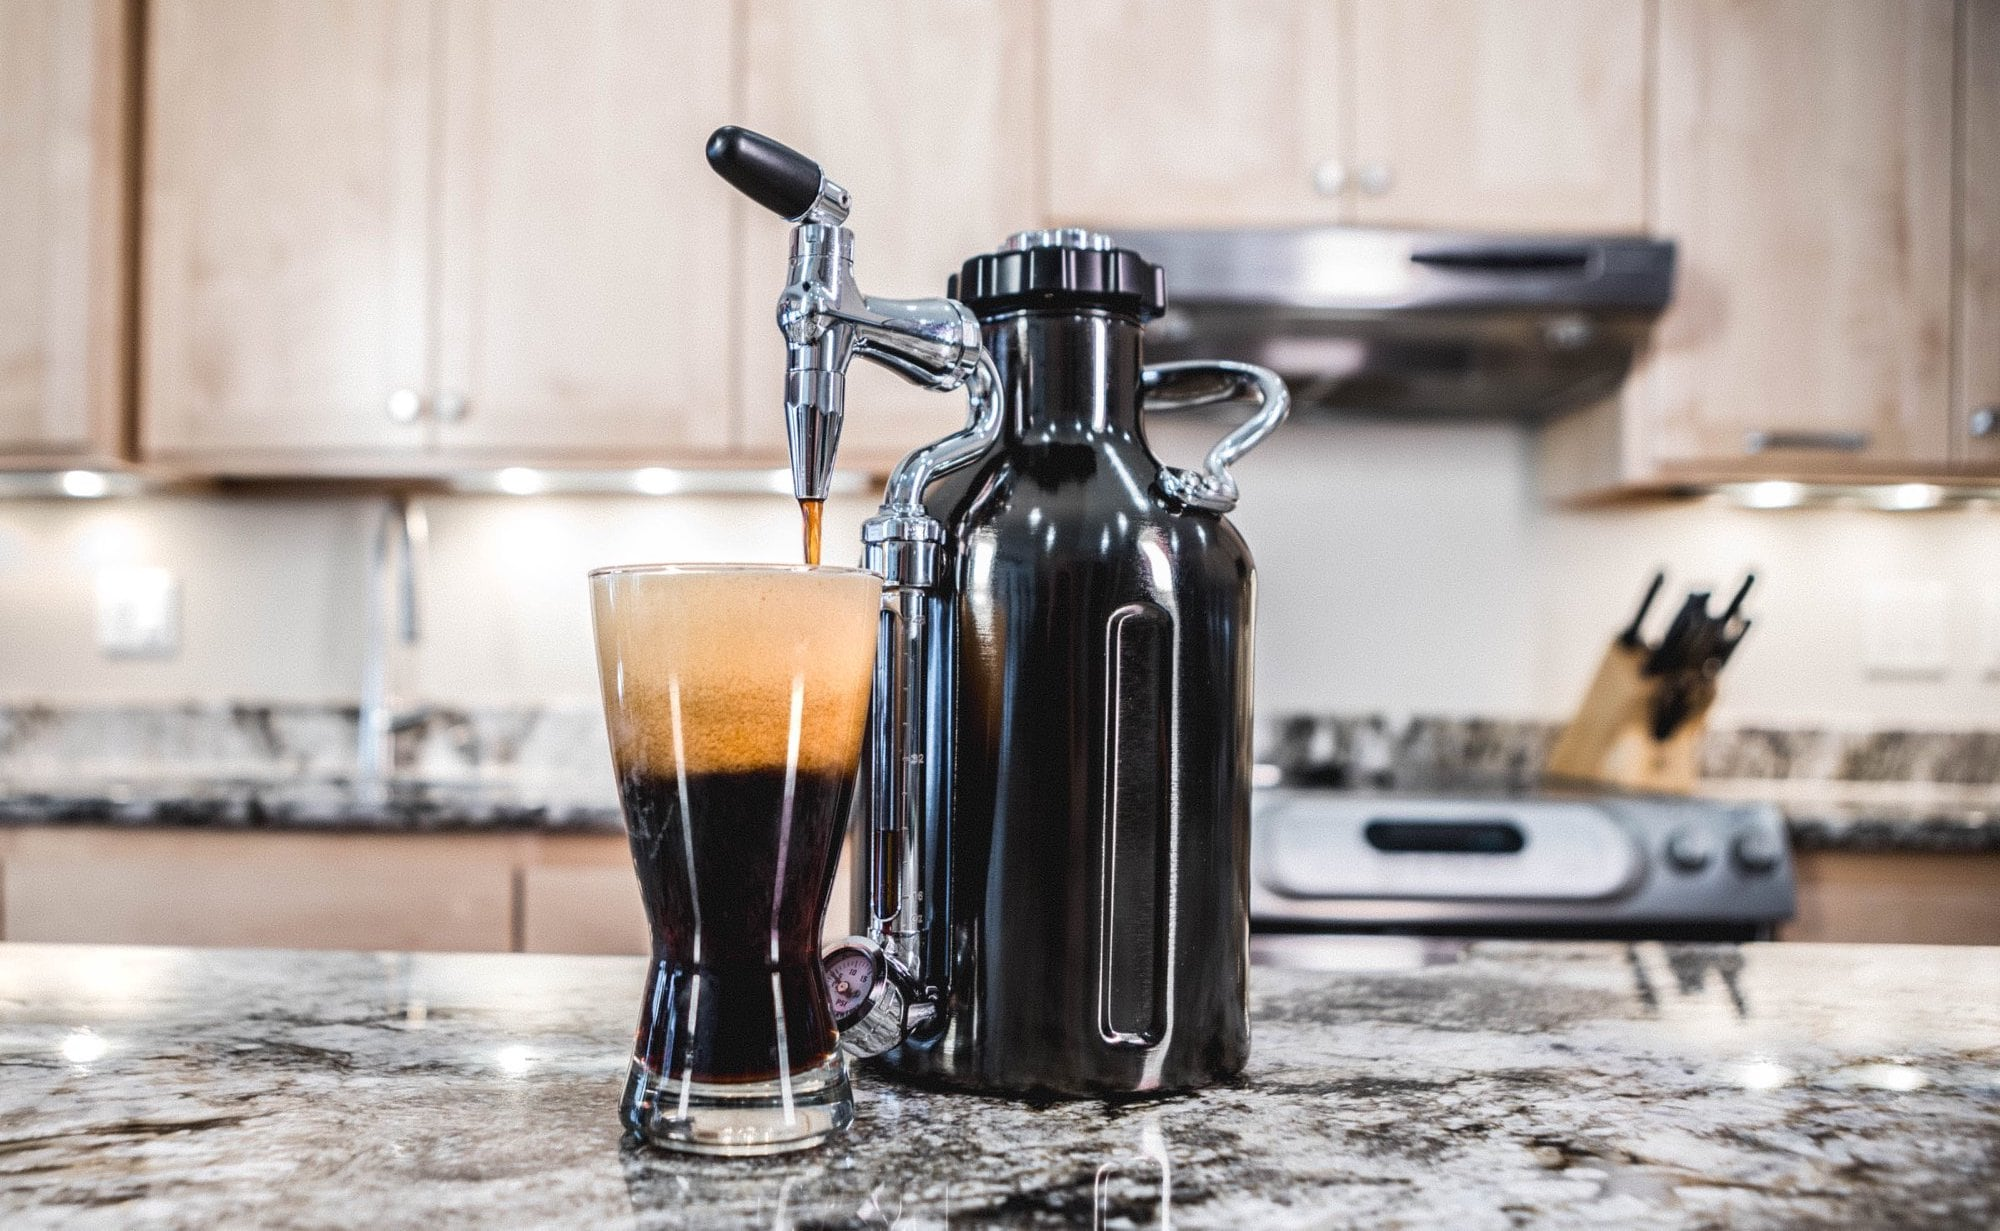 The cold brew coffee machine is on a kitchen counter and dispensing nitro coffee.